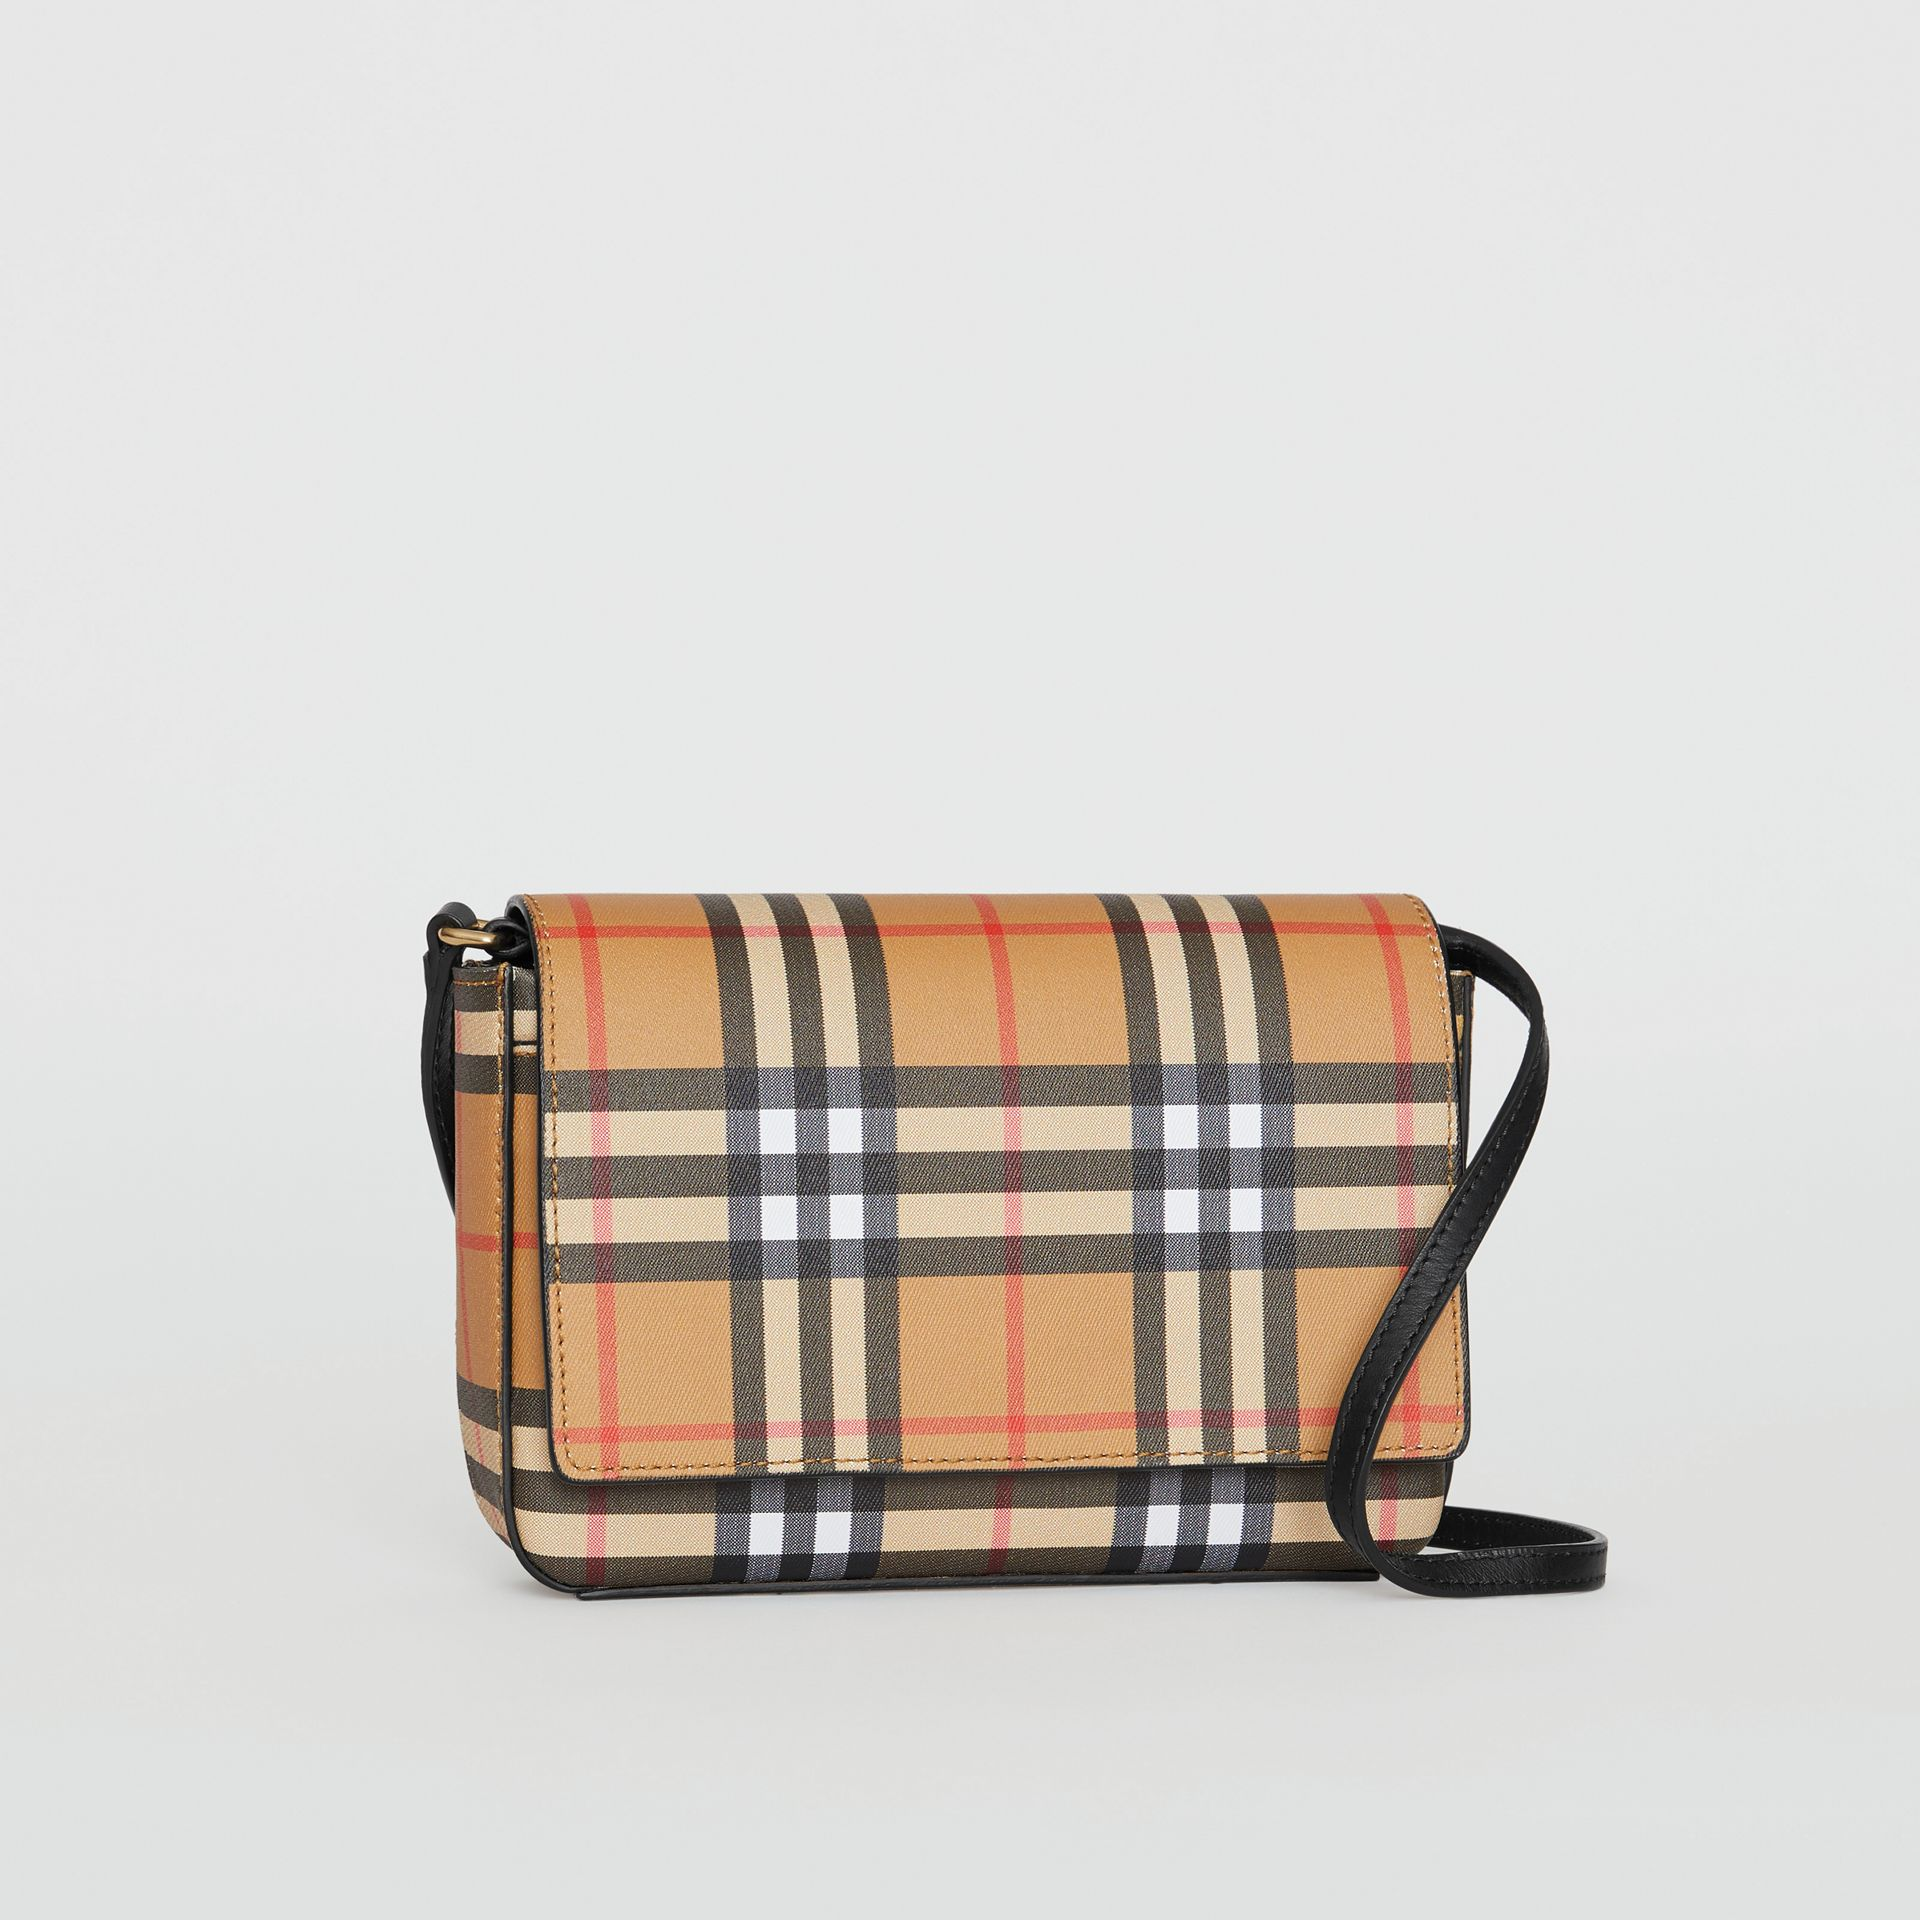 Vintage Check and Leather Wallet with Detachable Strap in Black - Women | Burberry - gallery image 6